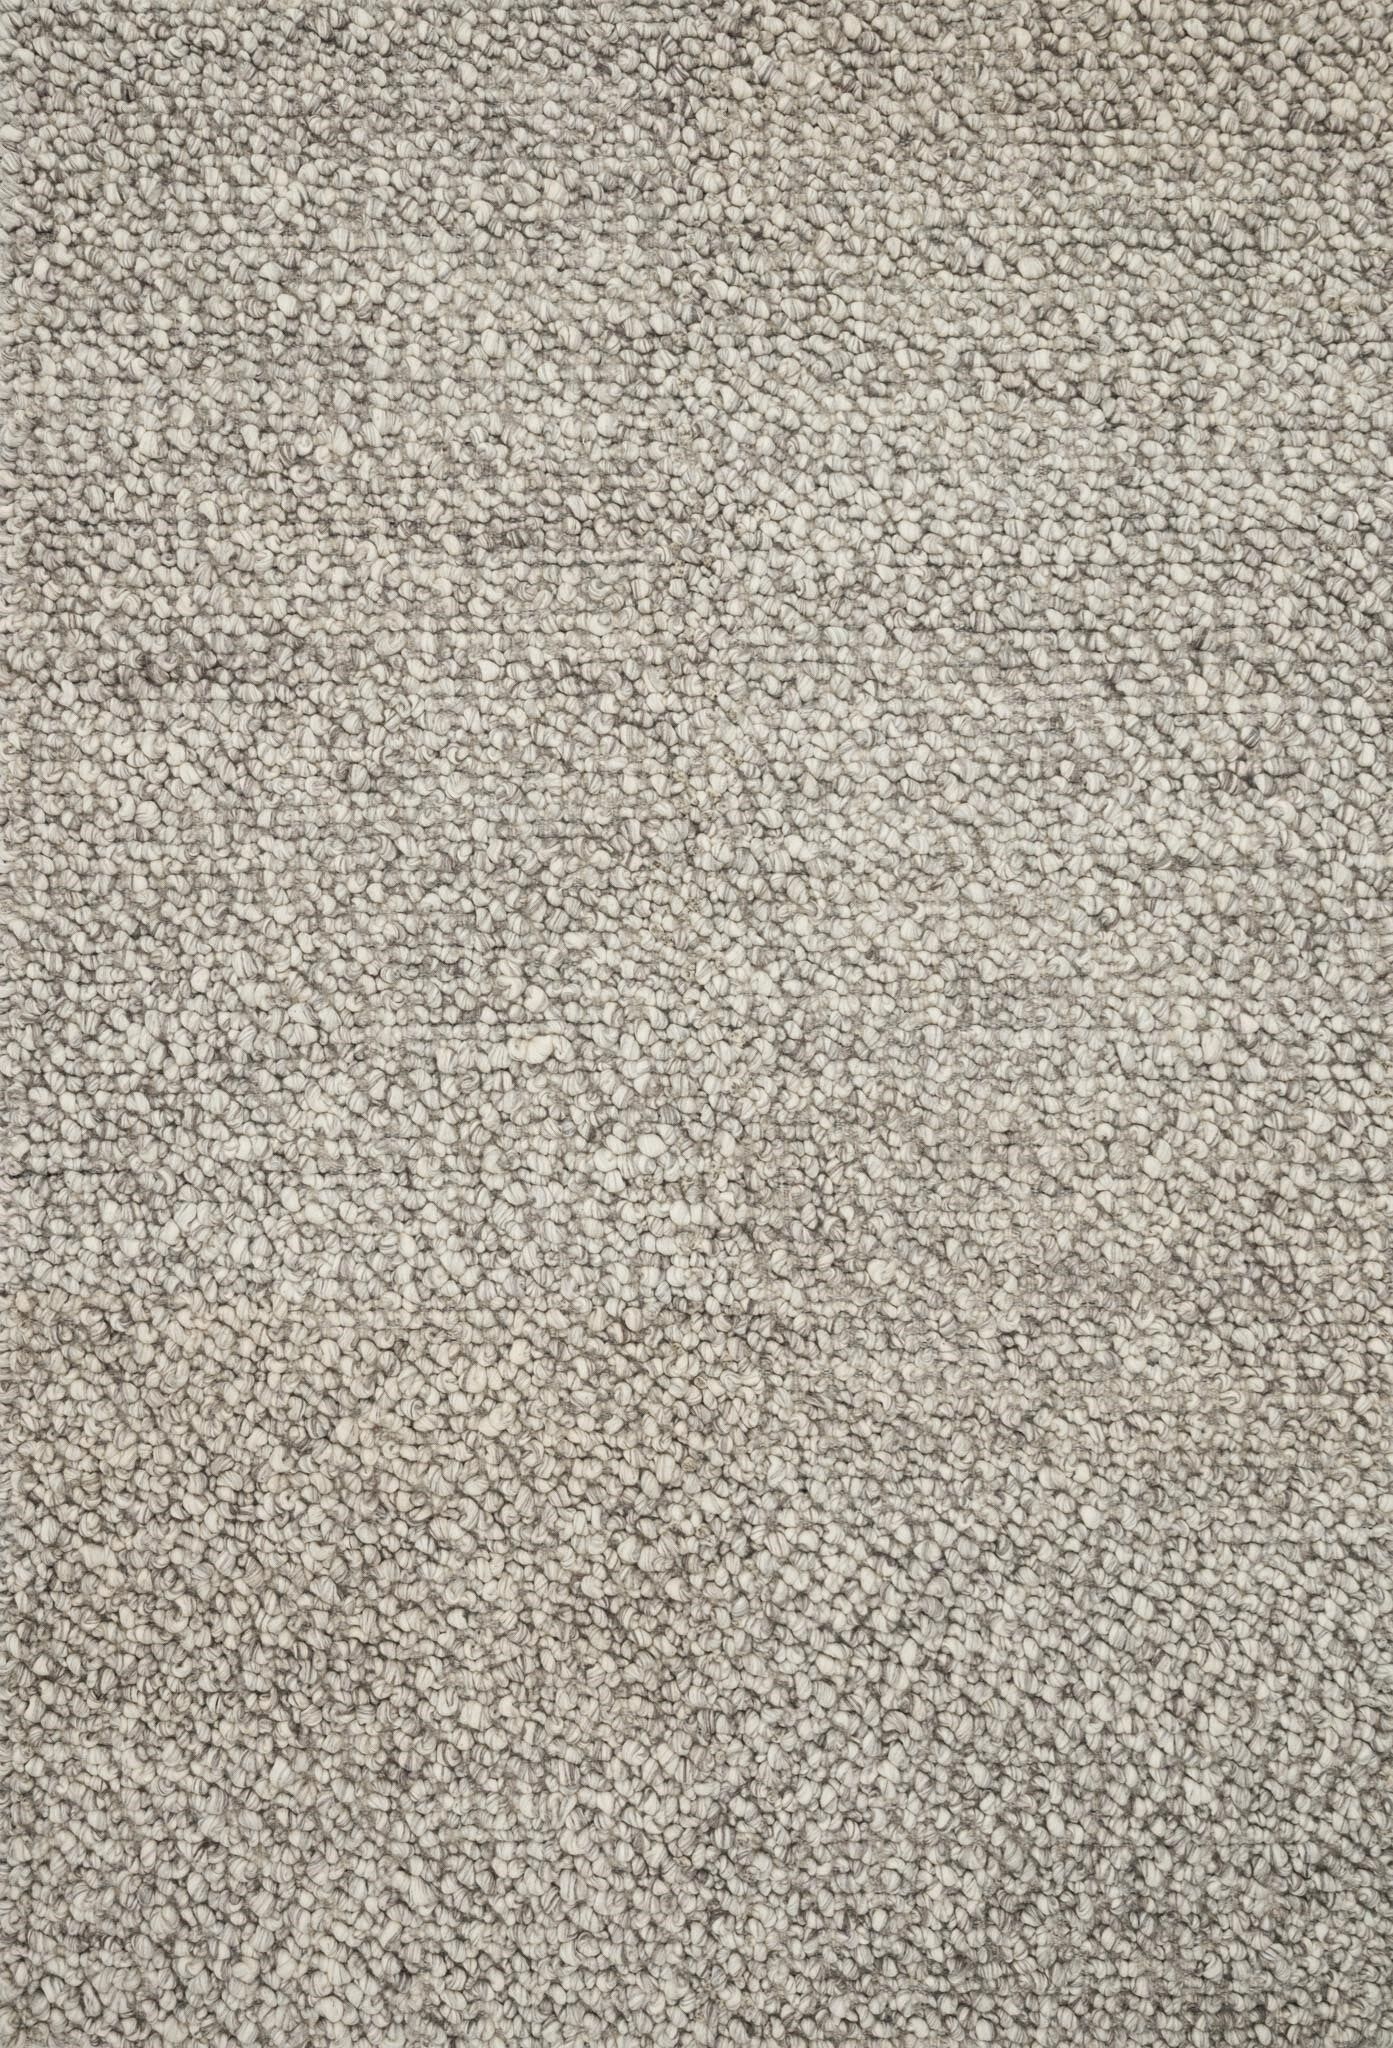 Francine Hand Woven Wool Brown Area Rug Rug Size: Rectangle 11'6